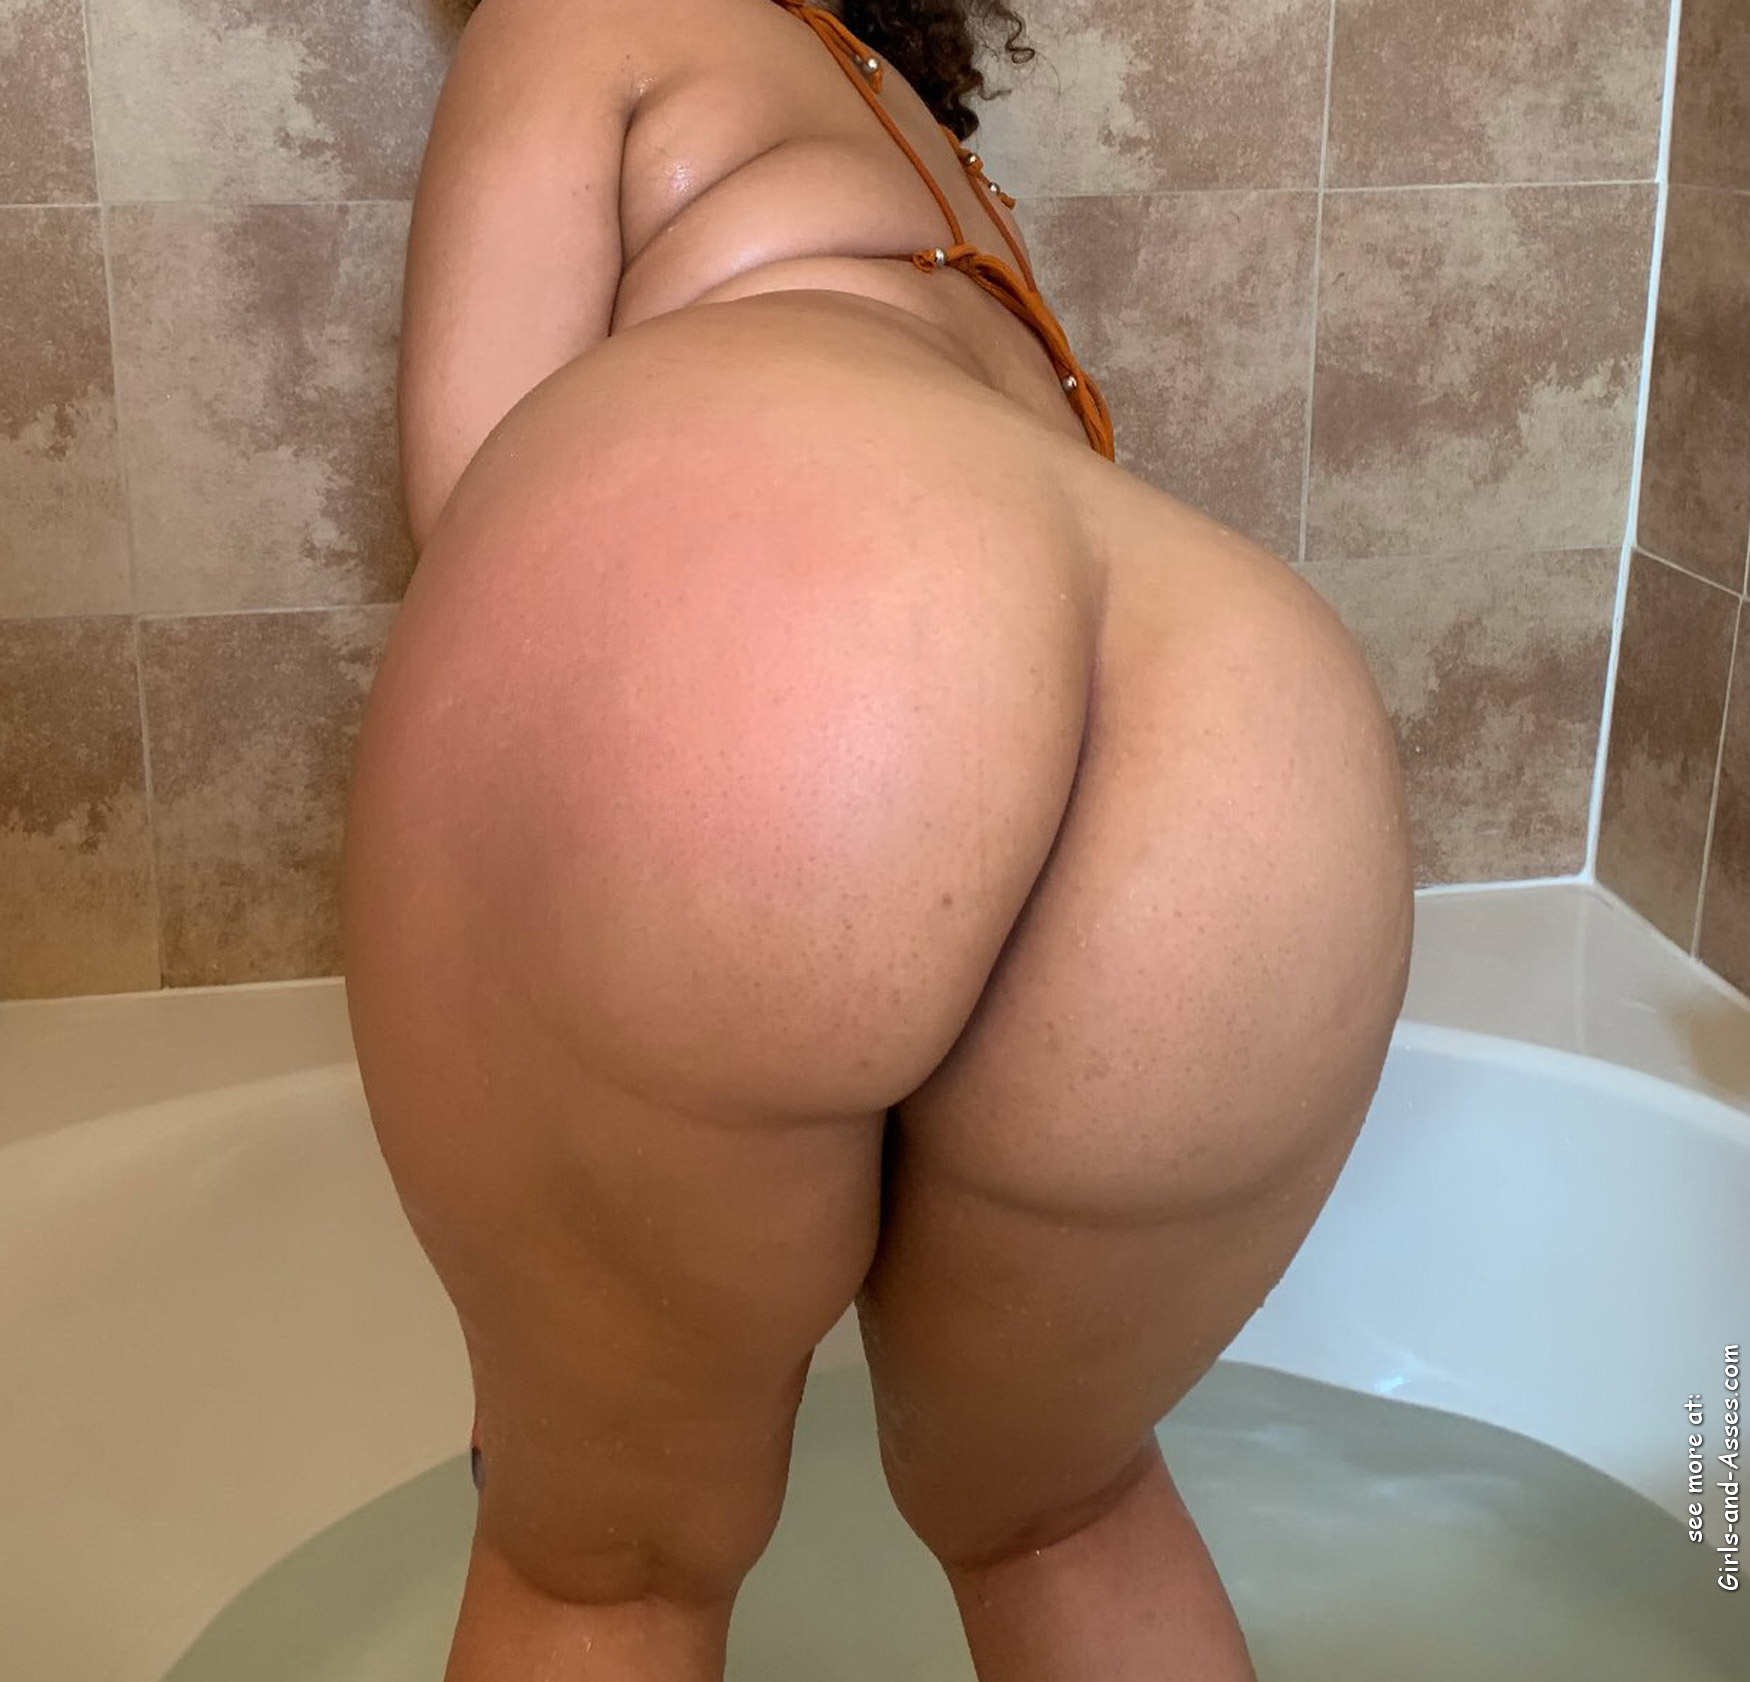 nude girl with massive ass in the bathtub photography 00946